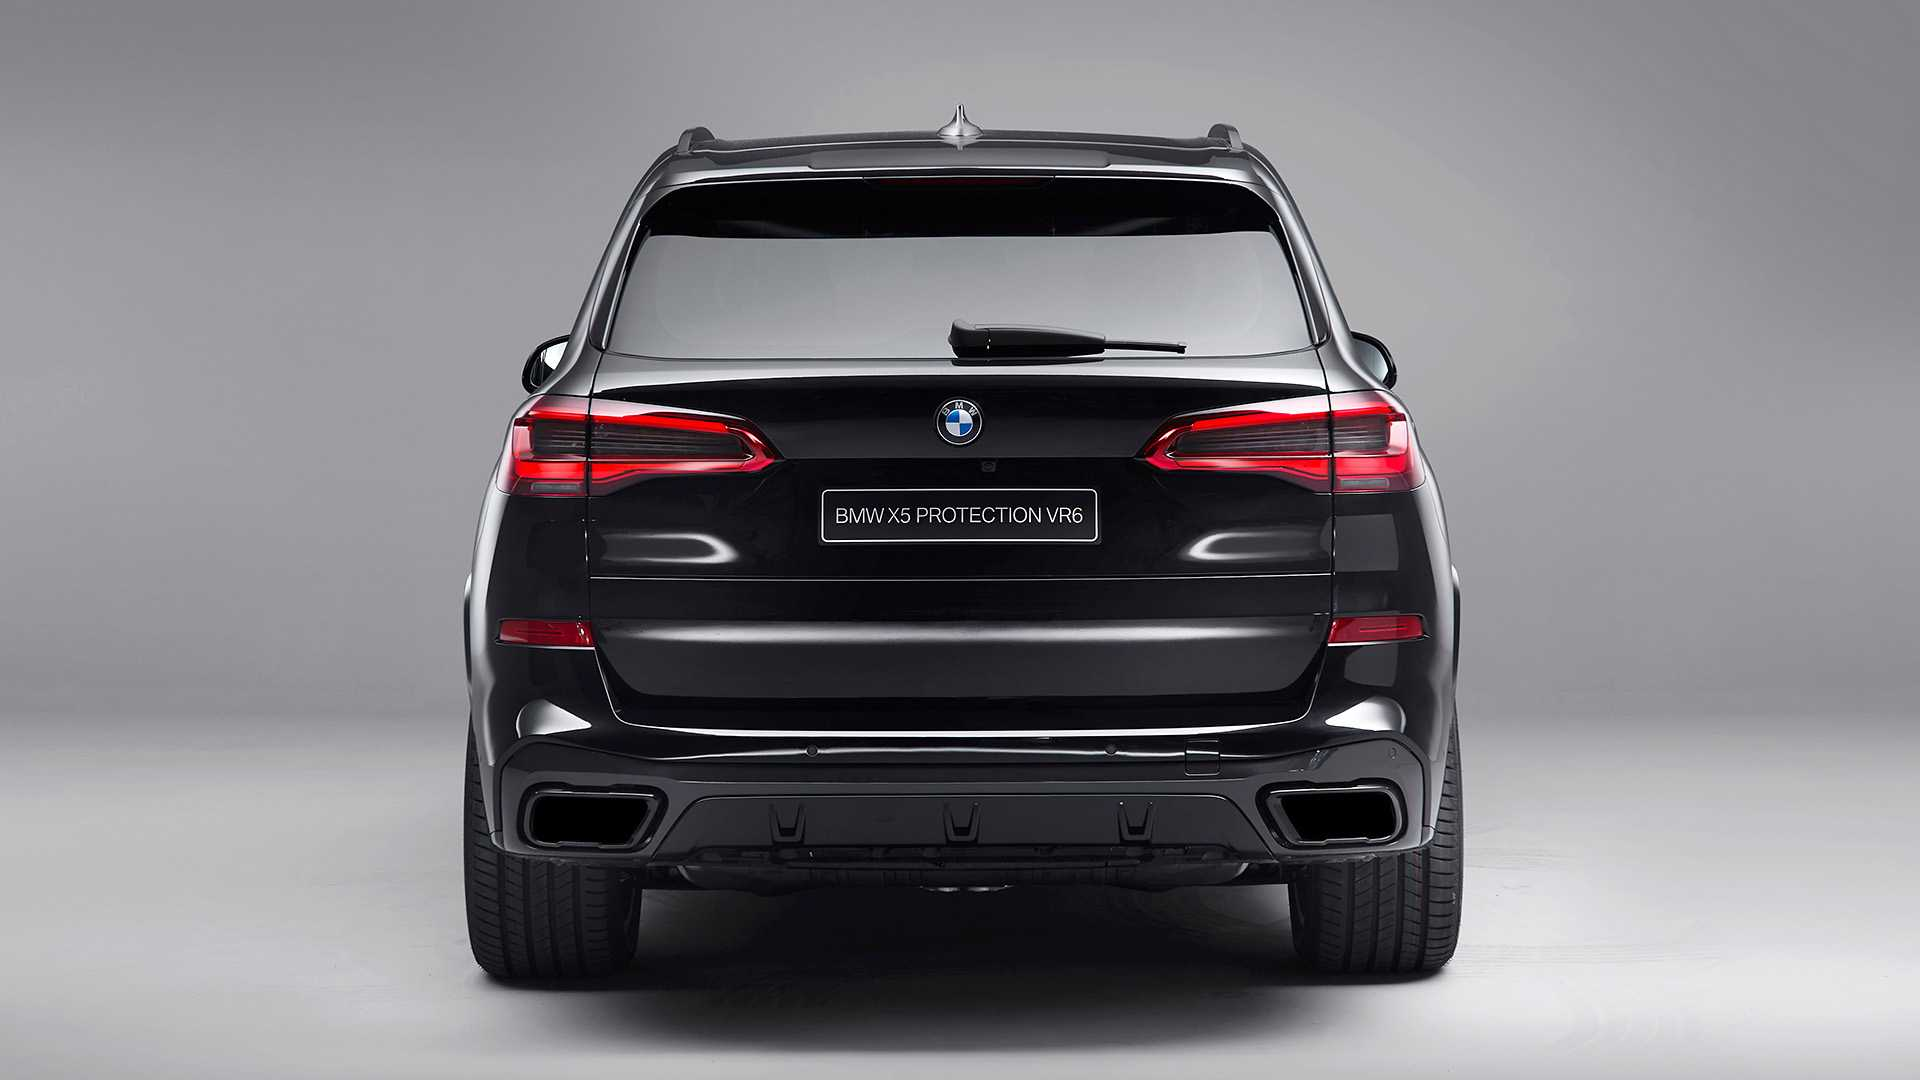 2020 BMW X5 Protection VR6 (Armored Vehicle) Rear Wallpapers (4)